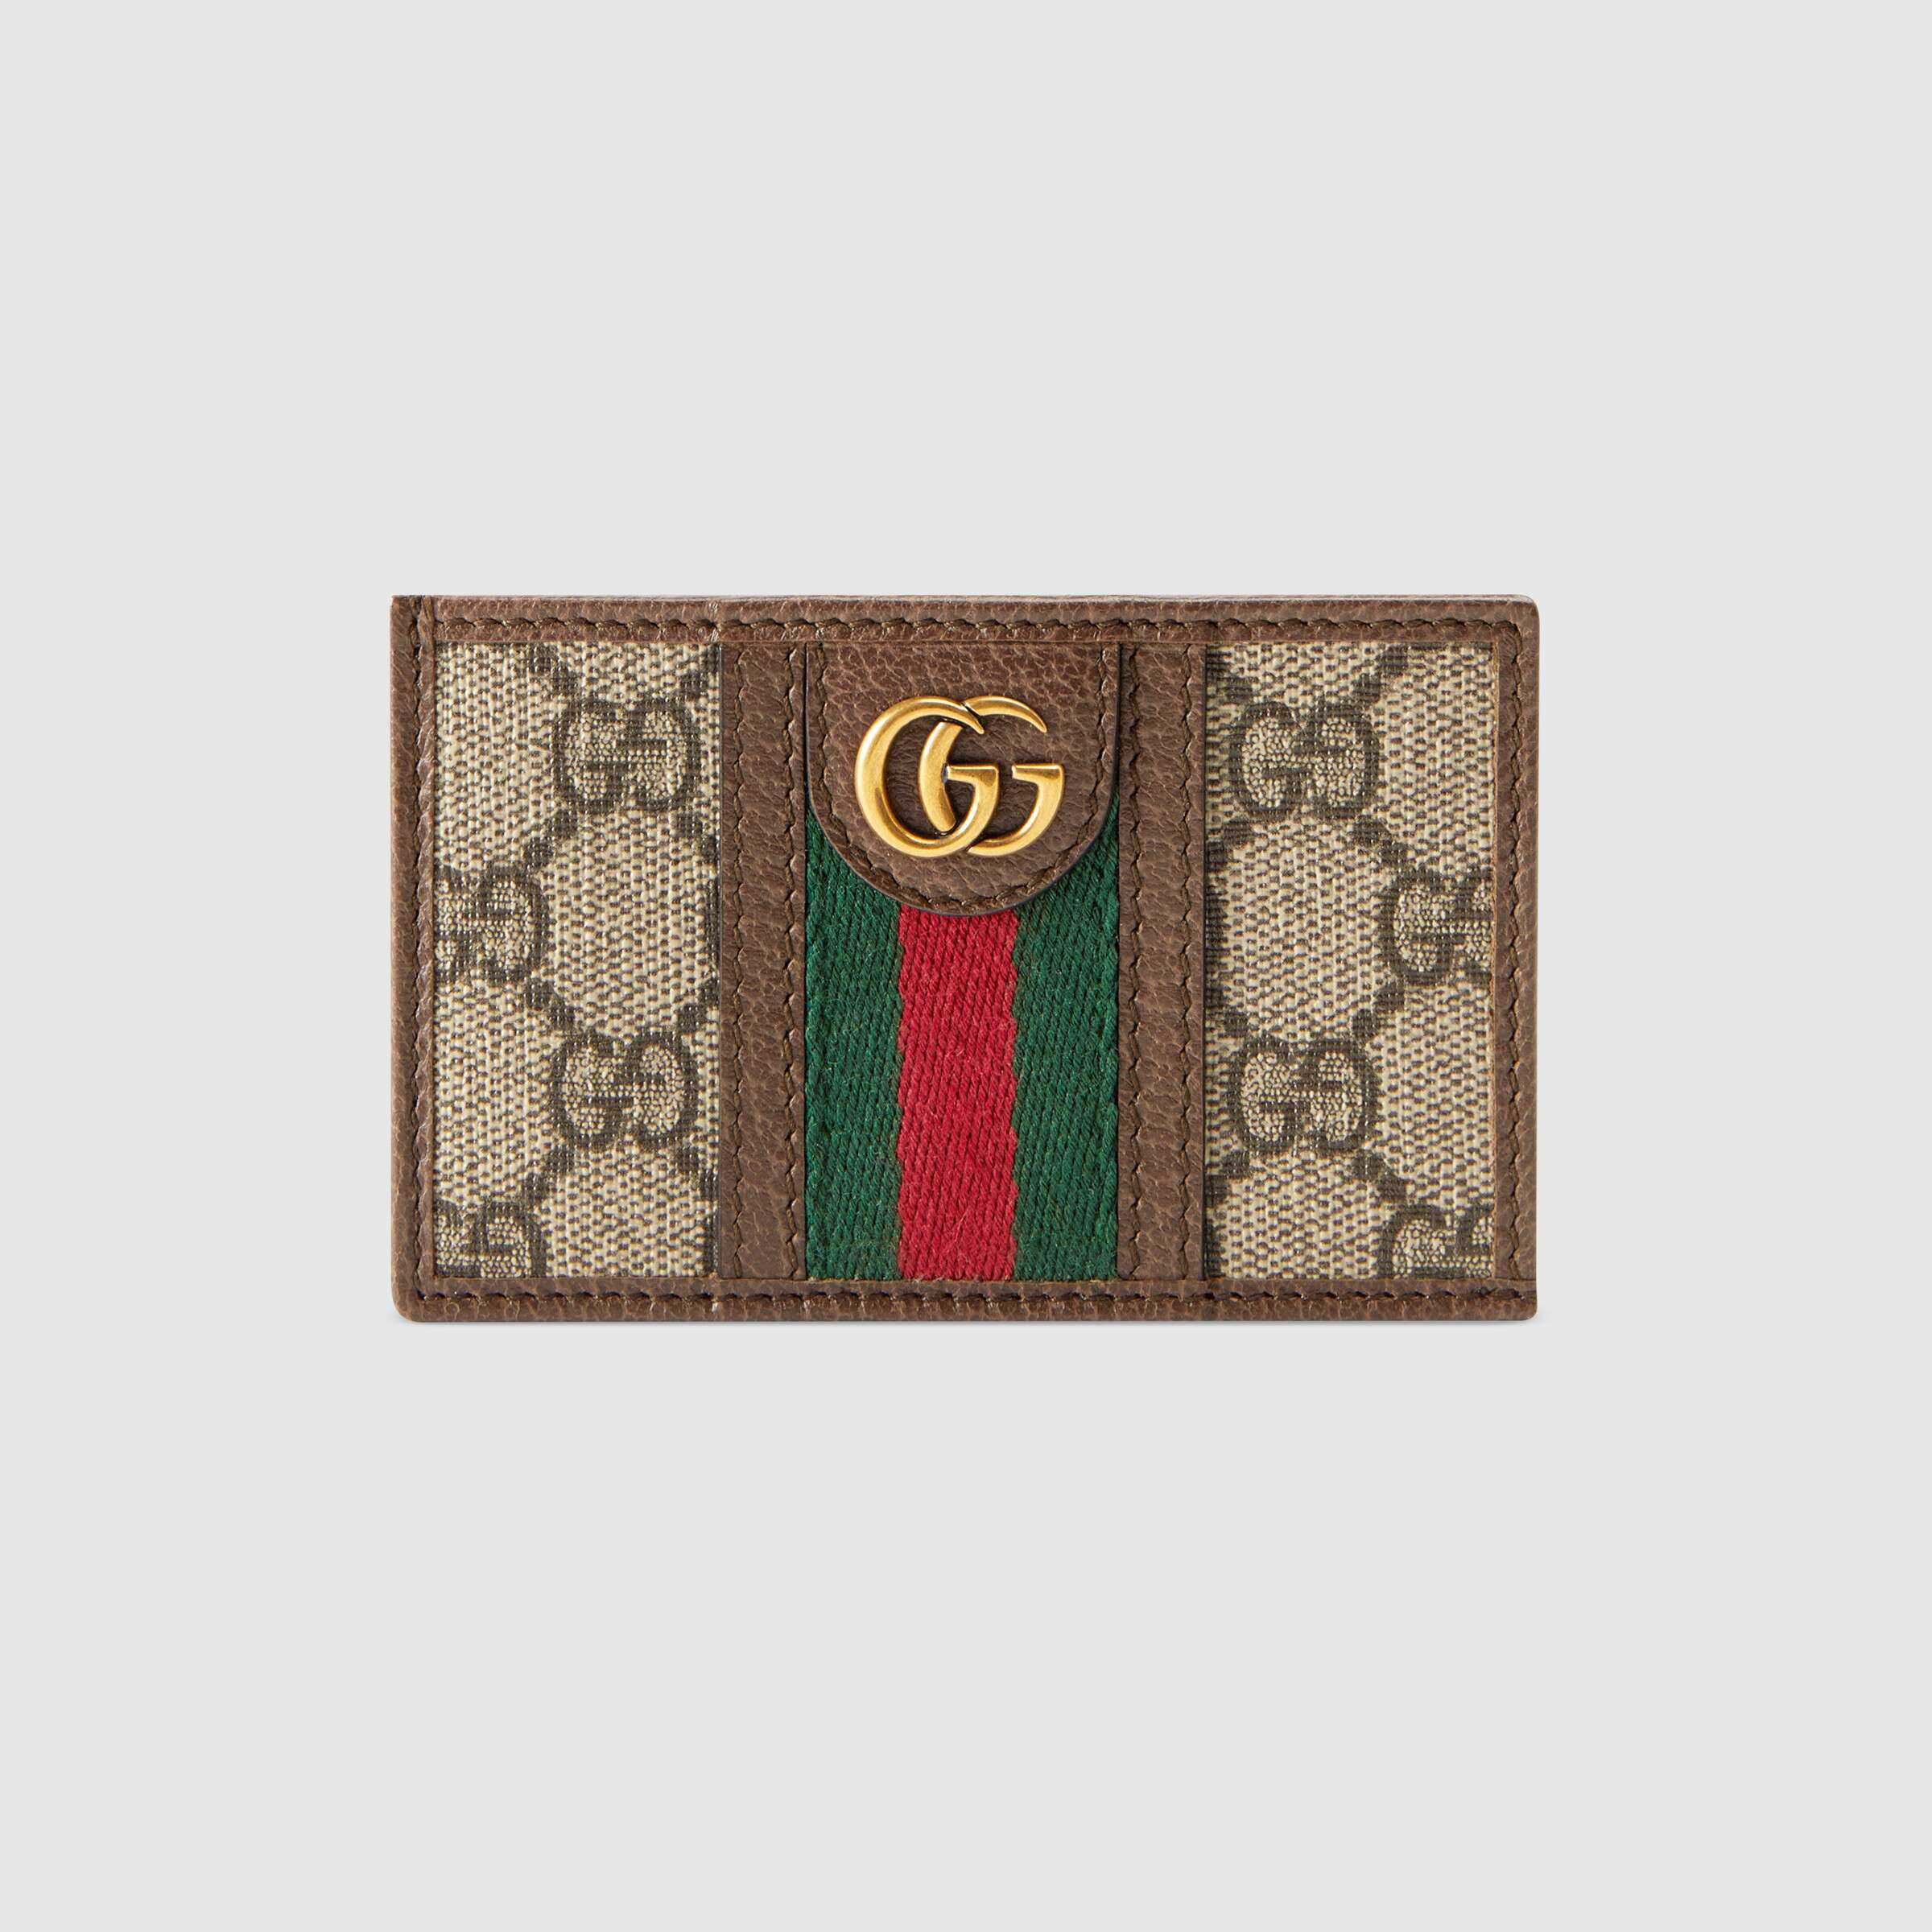 Gucci/古驰 Ophidia系列GG卡包 597617 96IWT 8745